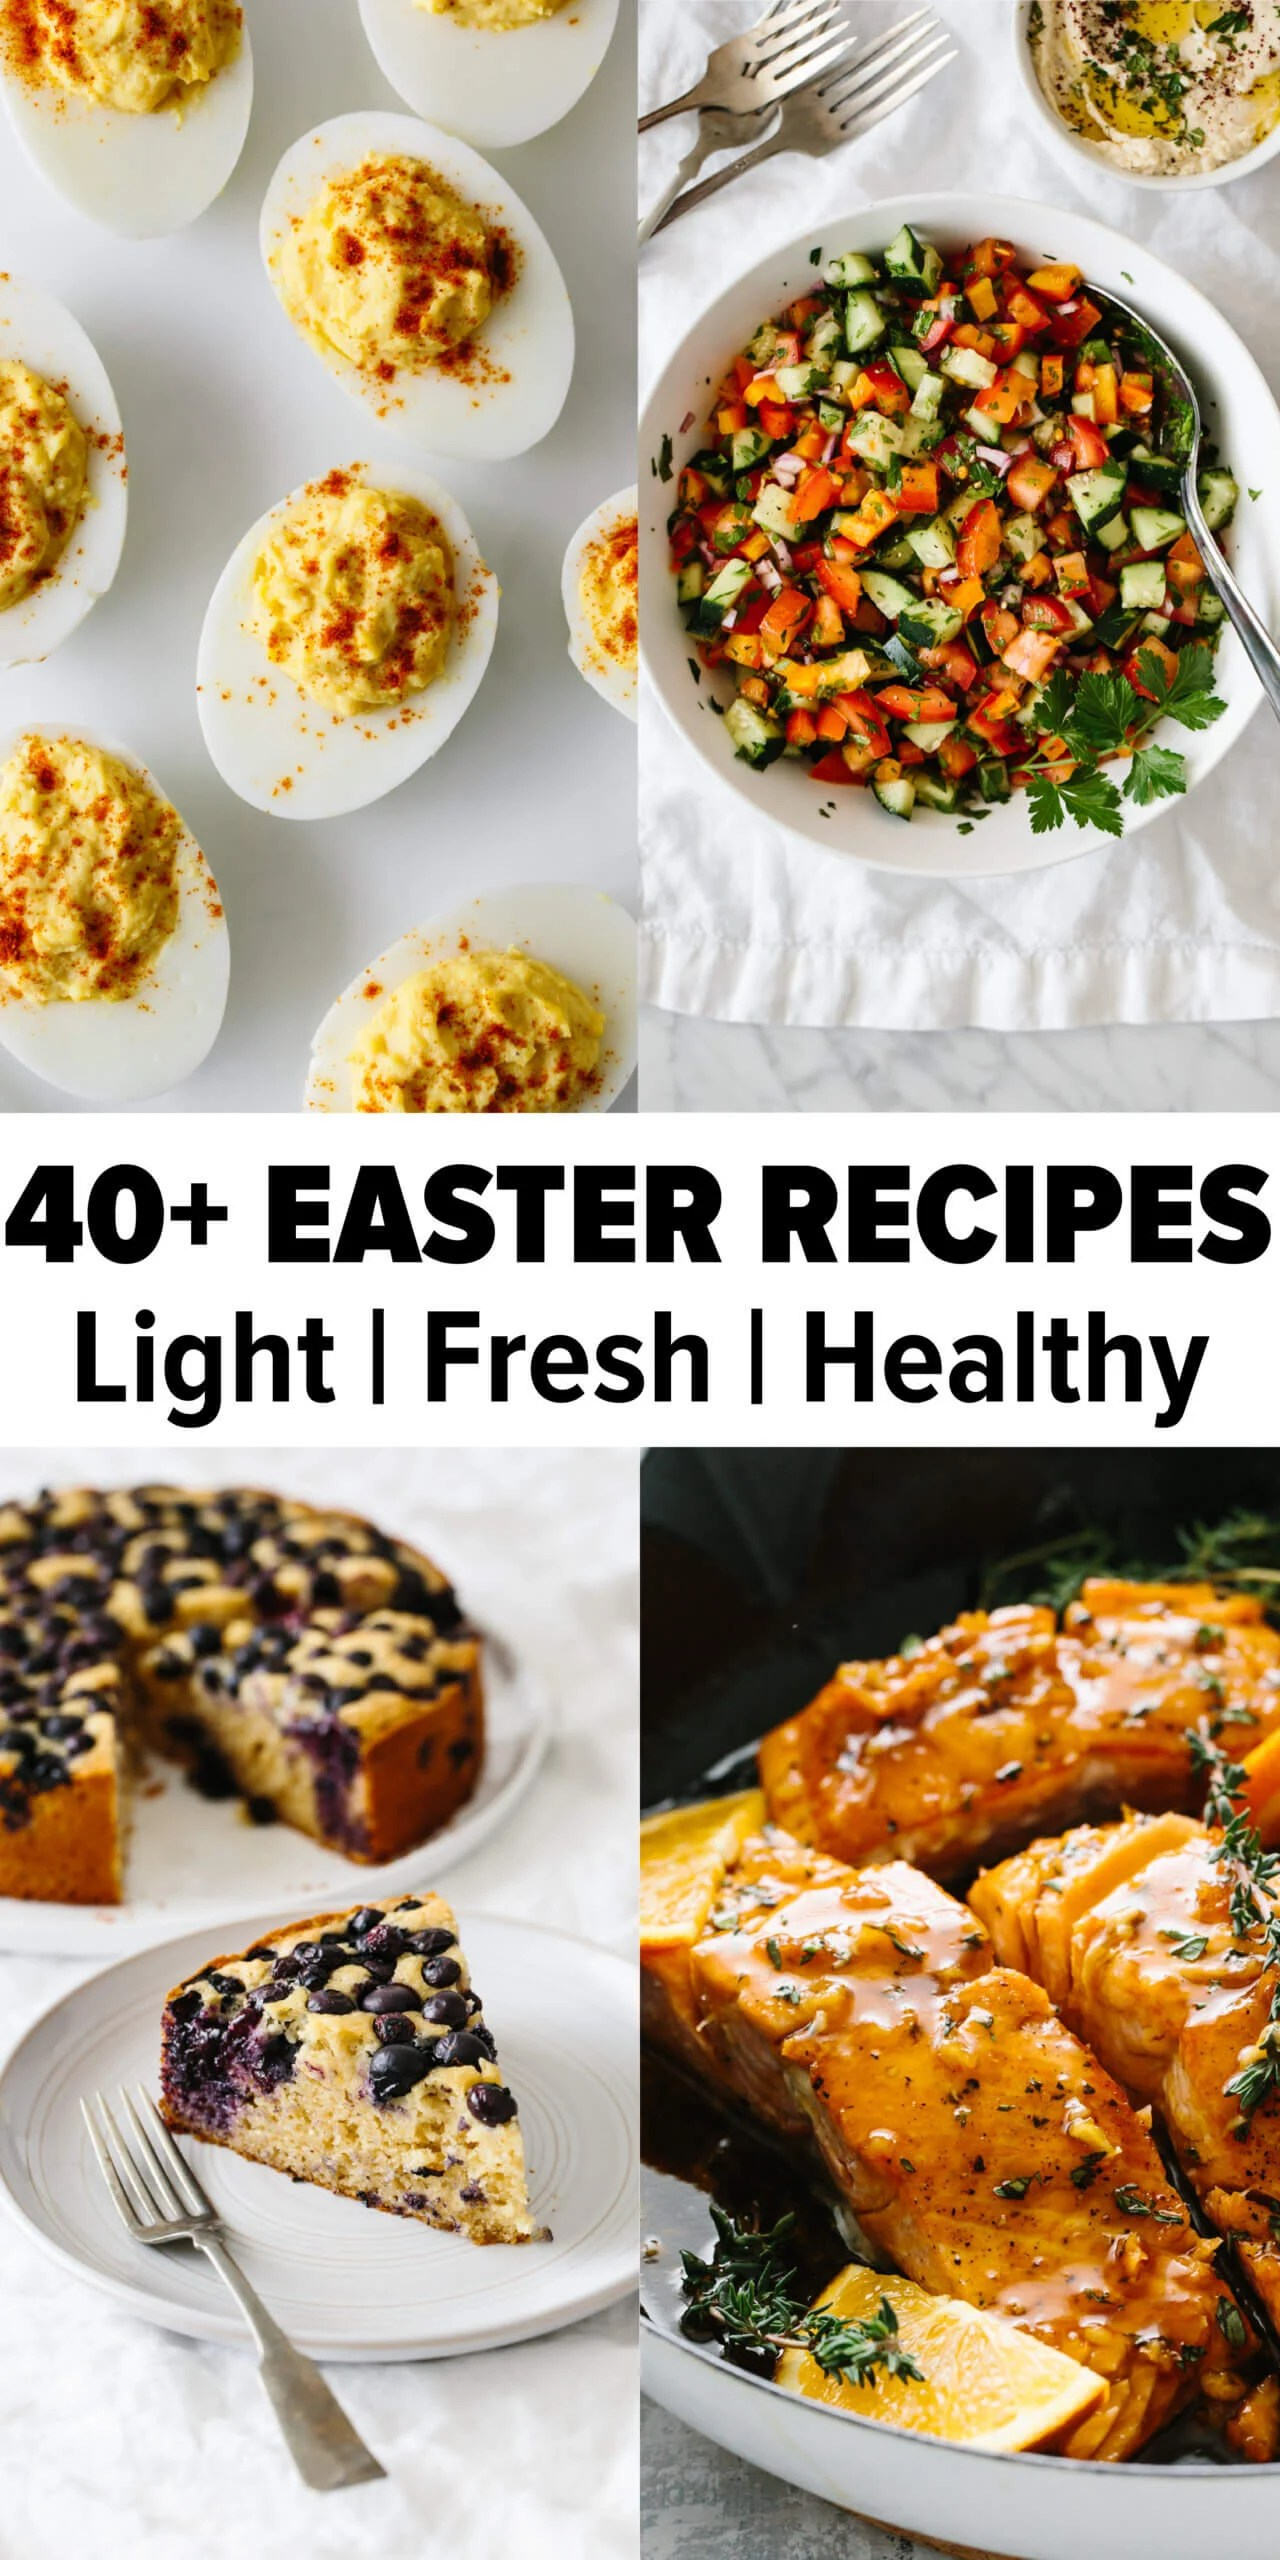 An assortment of Easter recipes.